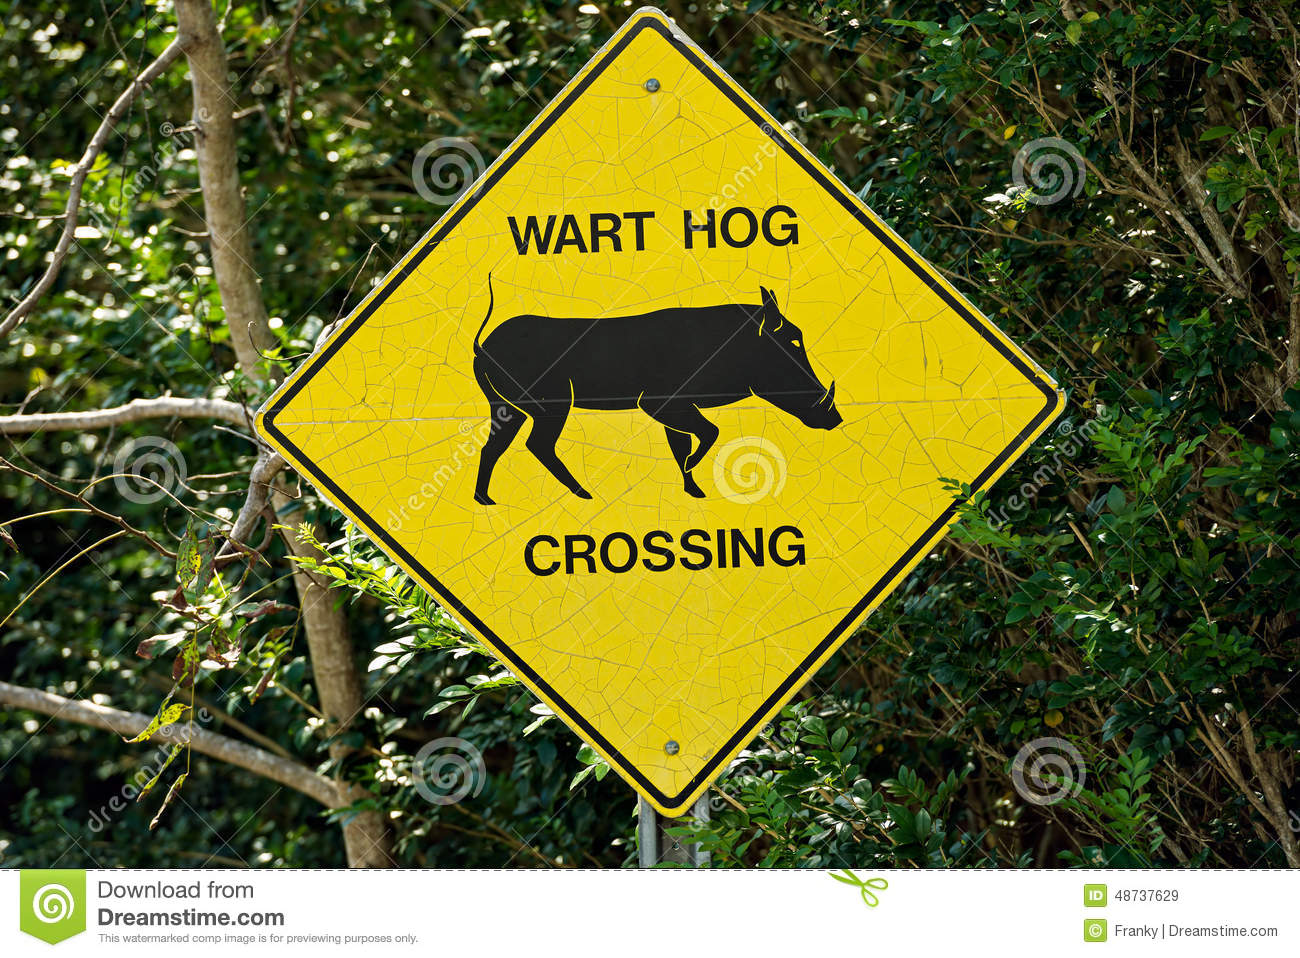 Traffic sign wart hog crossing